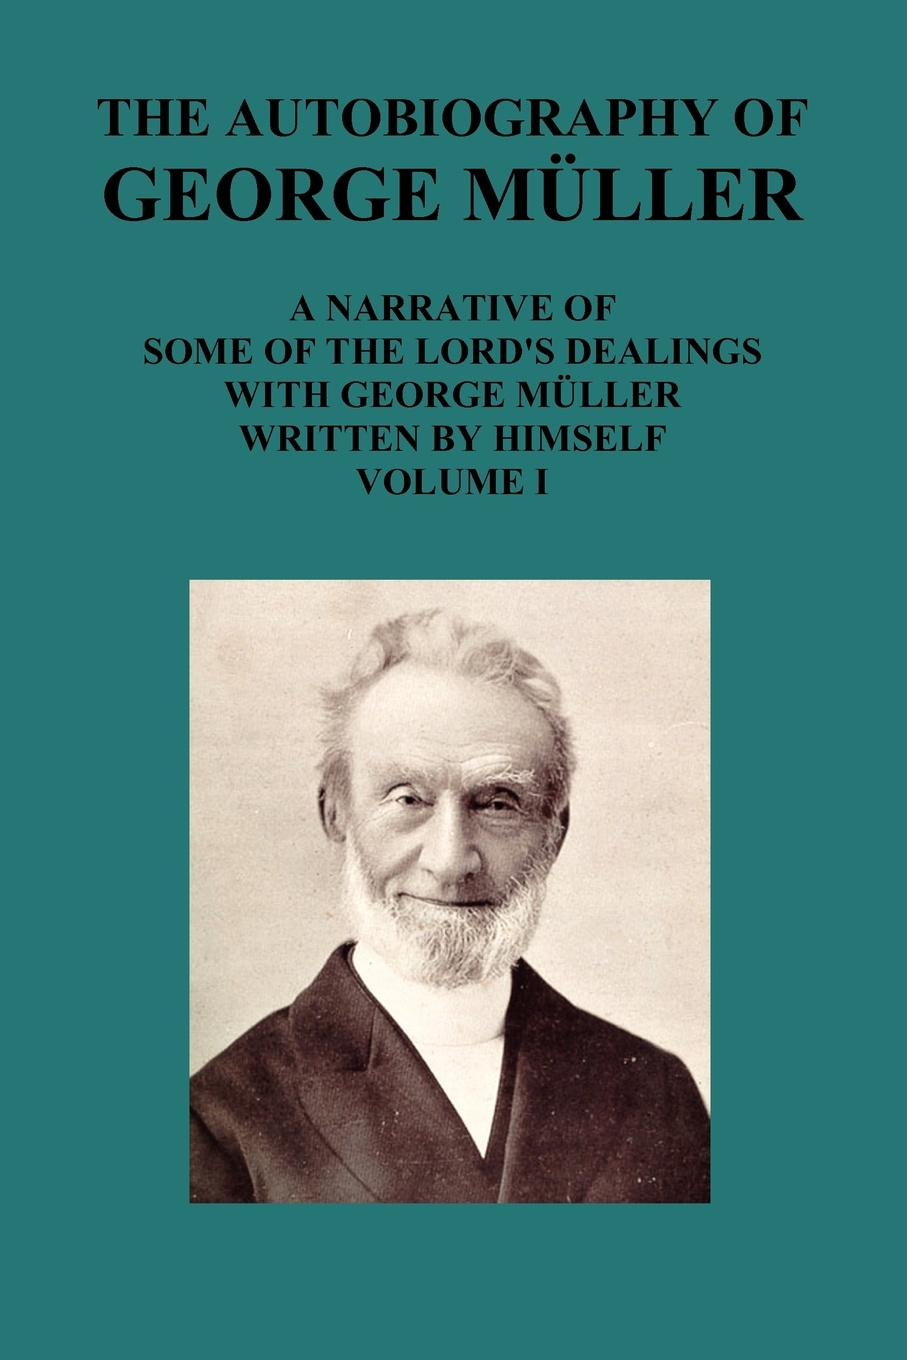 Фото - George Mueller The Autobiography of George Muller a Narrative of Some of the Lord's Dealings with George Muller Written by Himself Vol I george biddlecombe the art of rigging